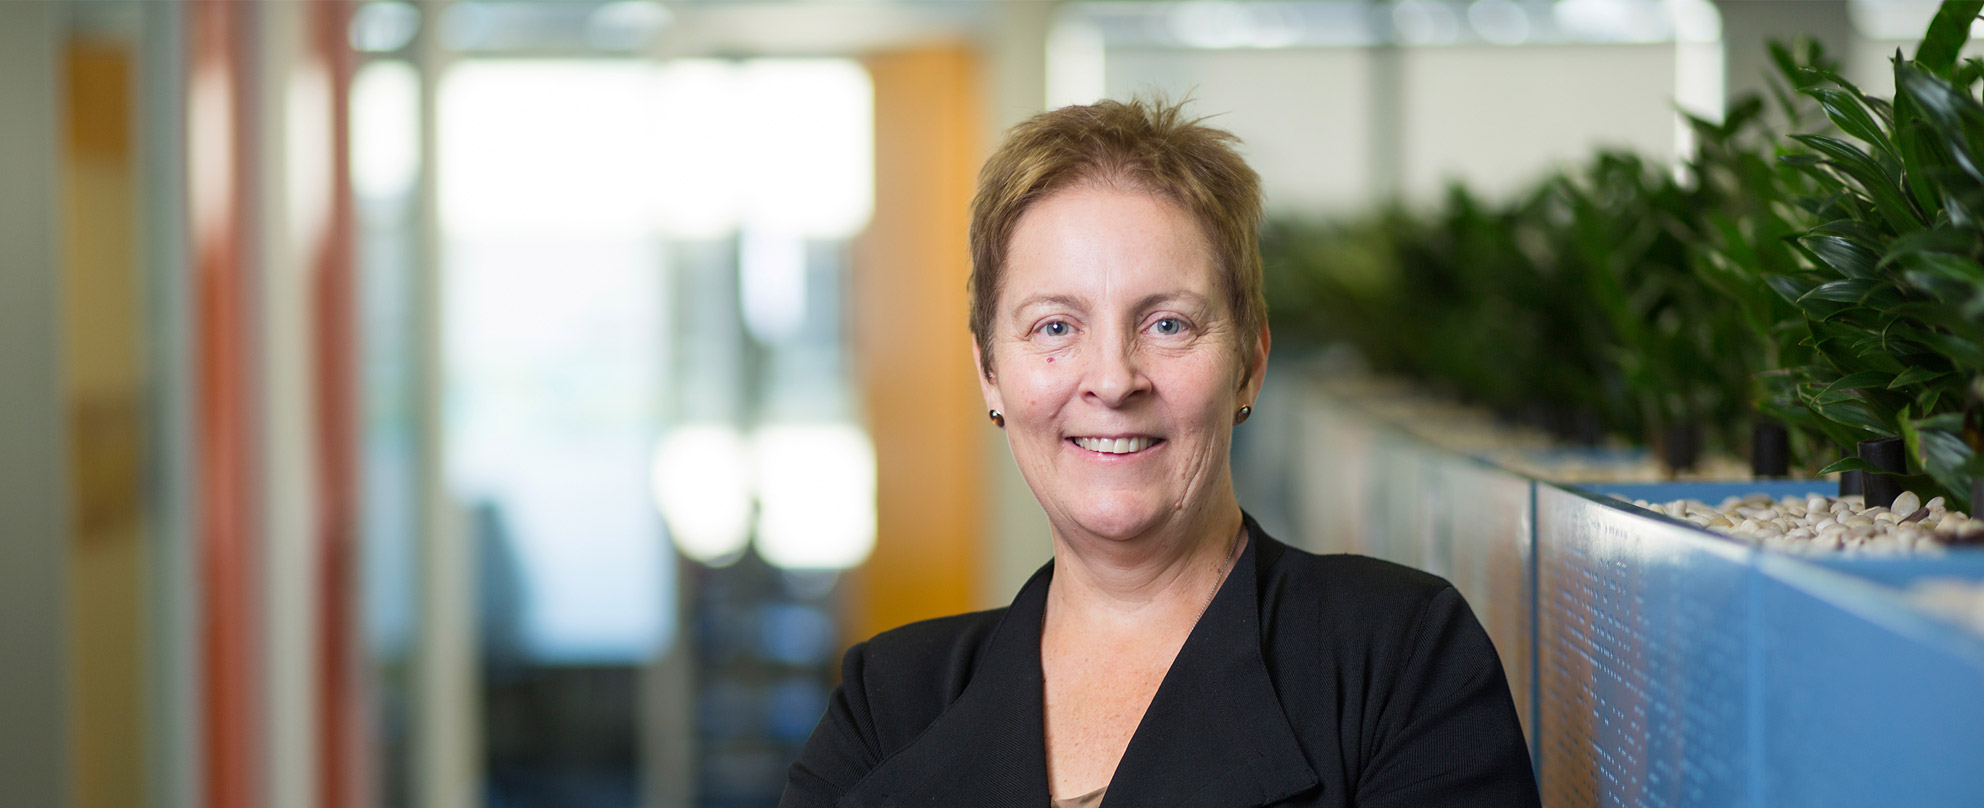 Headshot of Louise Glanville, Foundation CEO in front of a planter box, looking at the camera